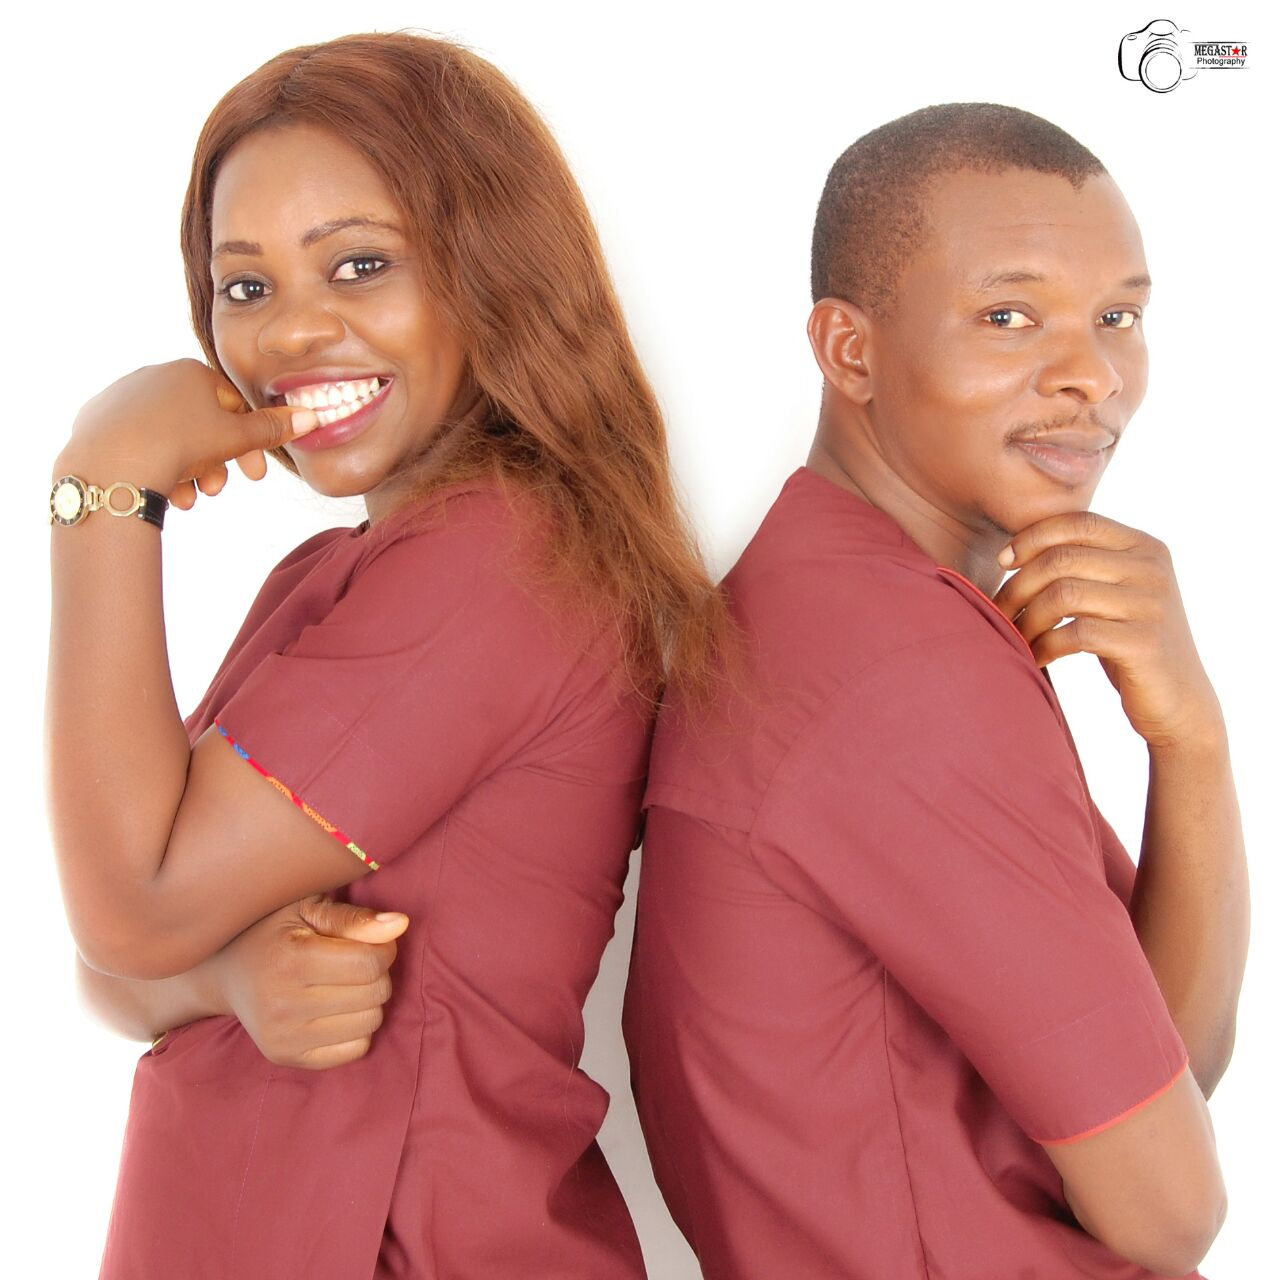 Images of Eseoghene and Isioma